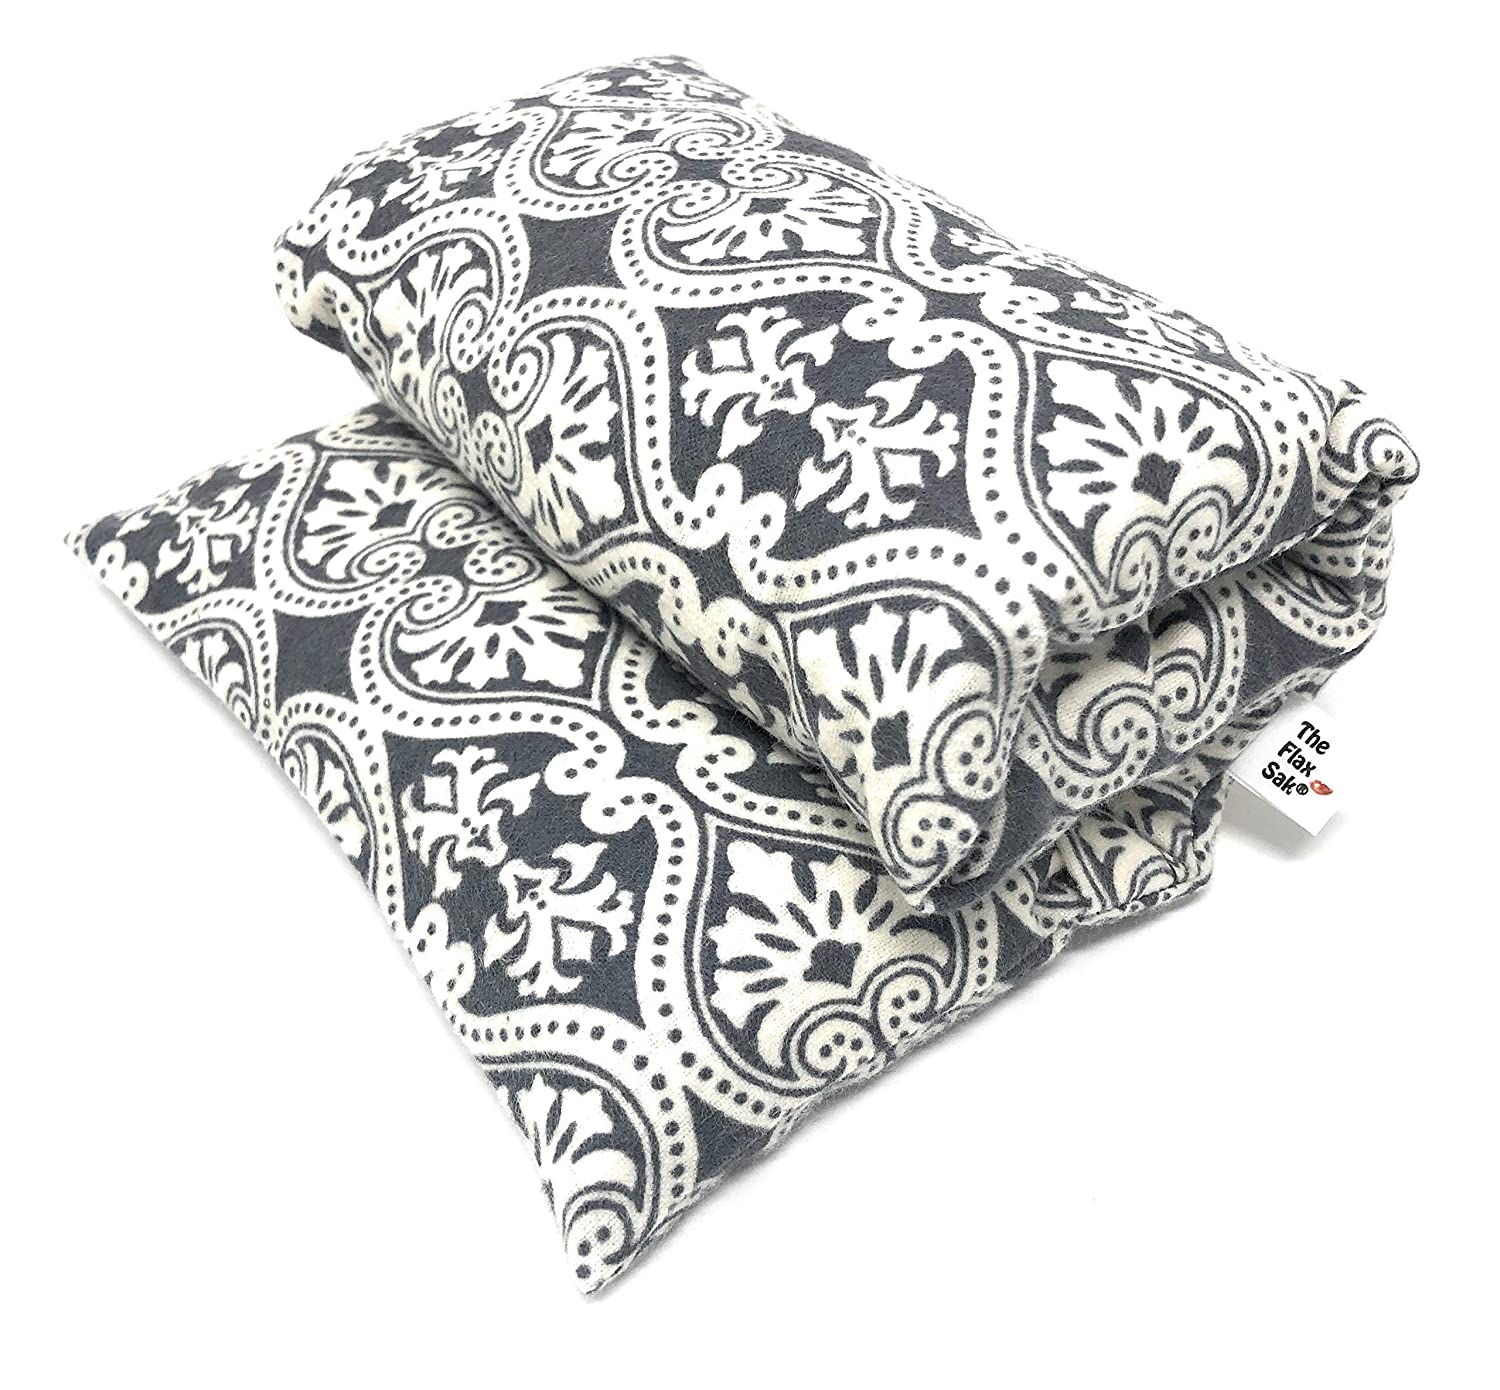 Christmas Gifts Under 50 | Microwavable Heating Pad for Back Pain | Hot Pack for Neck | Cold Compress After Surgery | XLG Unscented Grey Medallion Handmade in the U.S.A by Flax Sak